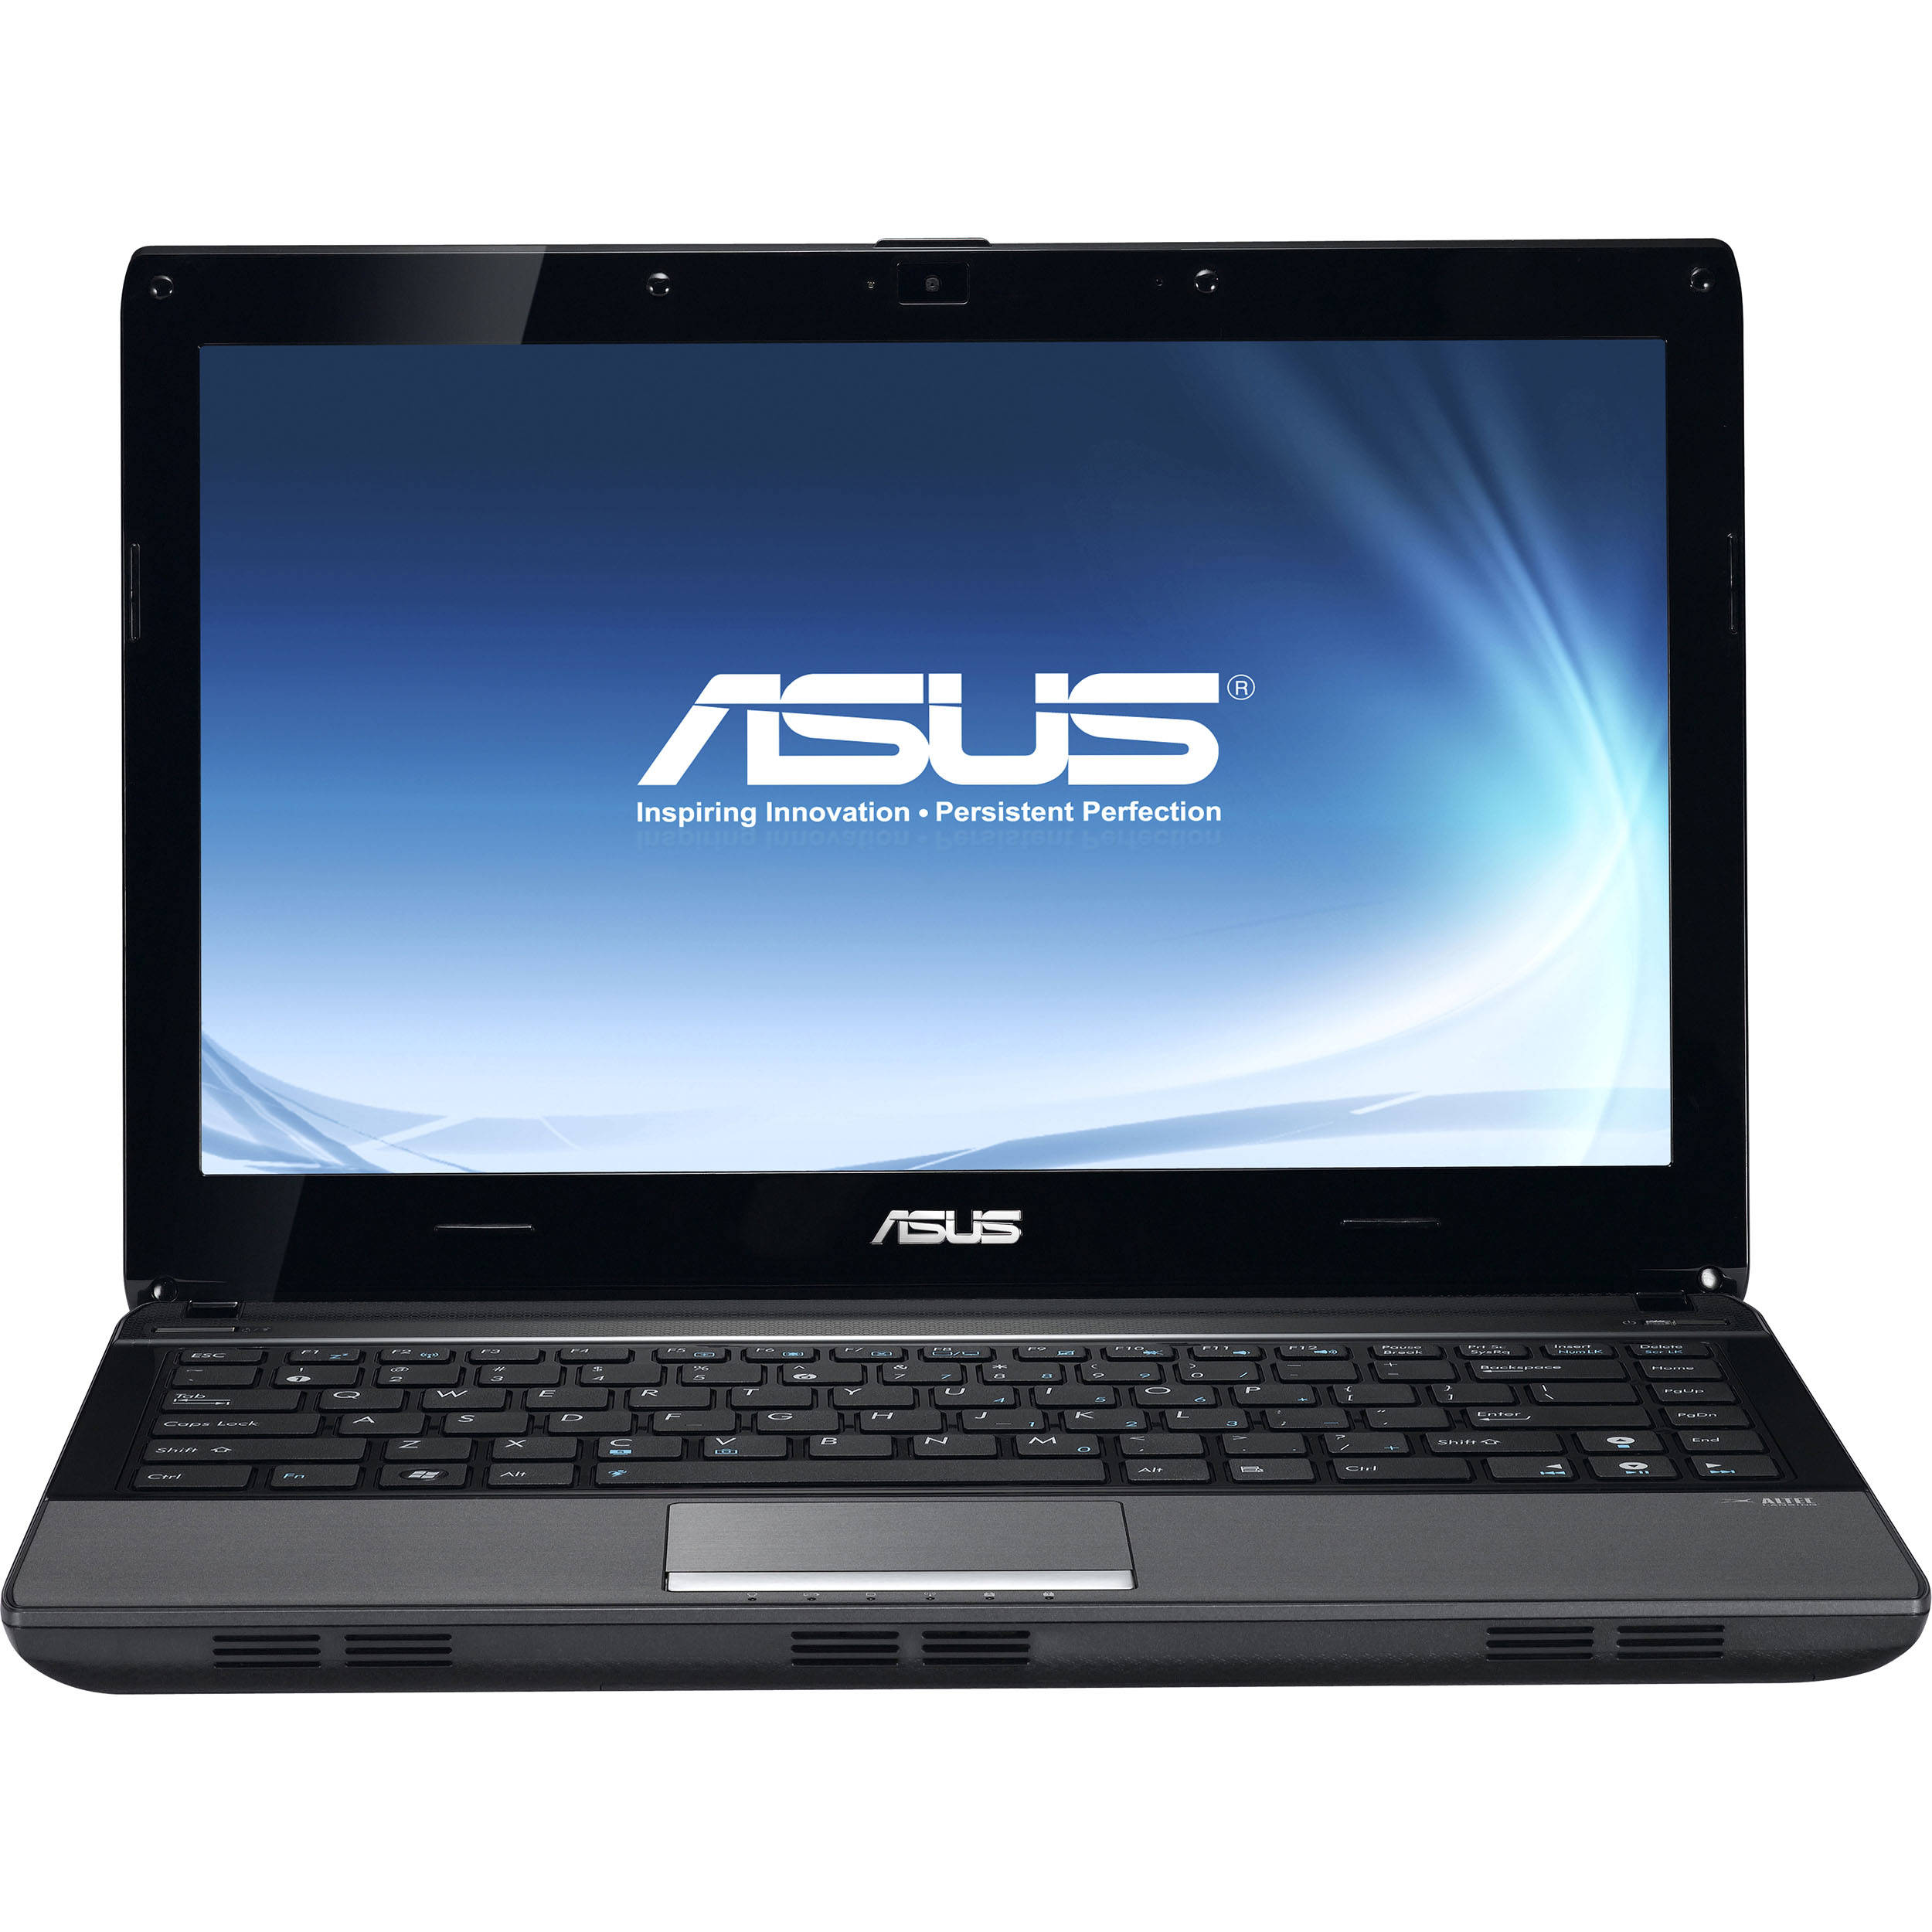 ASUS U31SG INTEL BLUETOOTH DRIVERS FOR WINDOWS DOWNLOAD